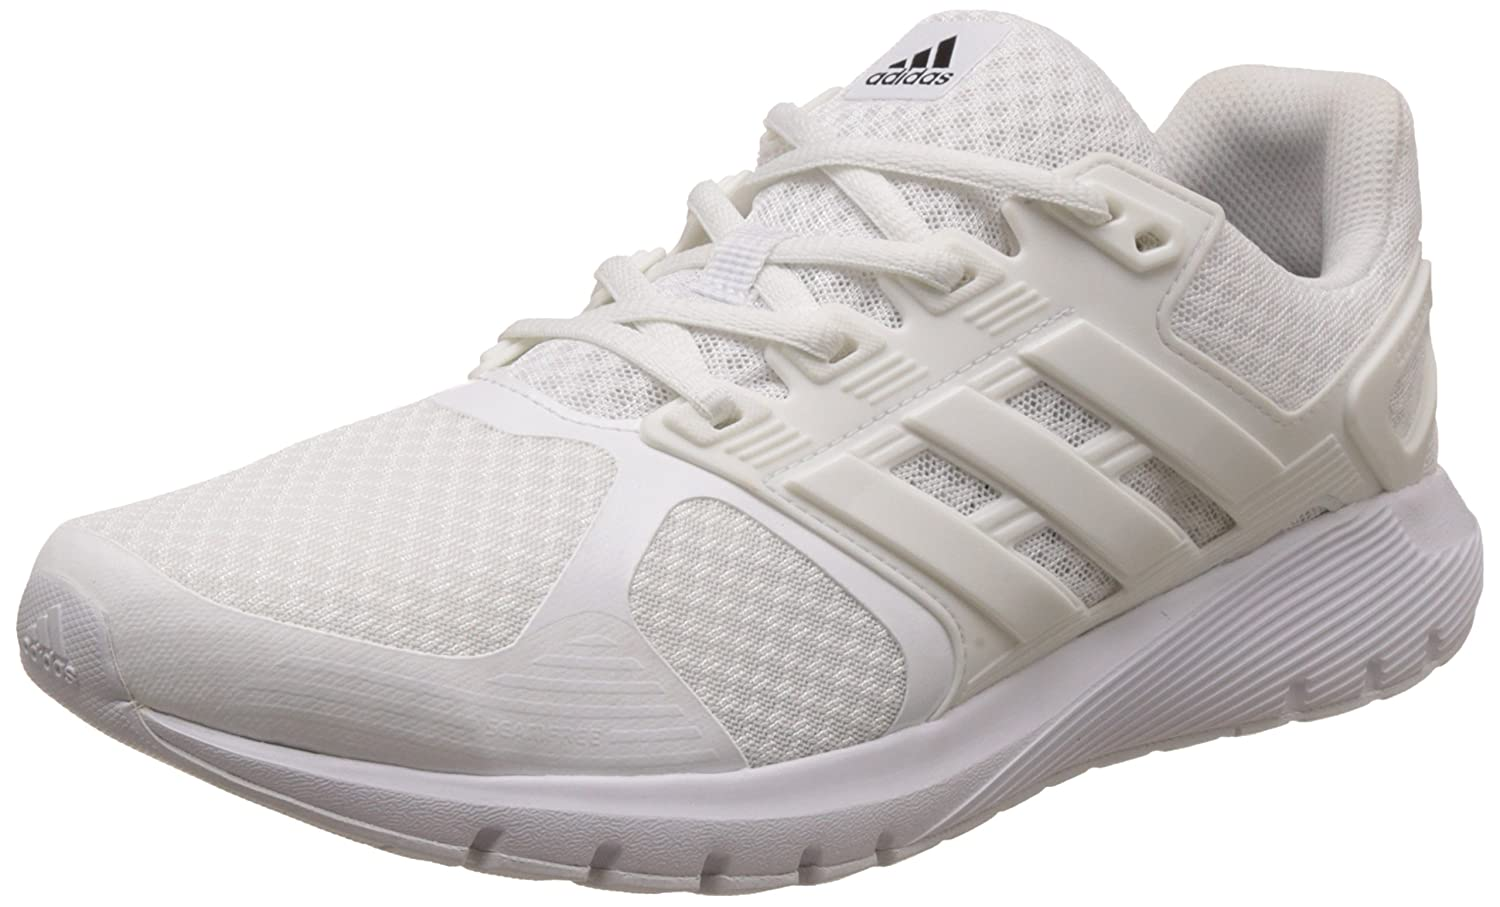 67735c943b0954 Adidas Men s Duramo 8 M Running Shoes  Buy Online at Low Prices in India -  Amazon.in